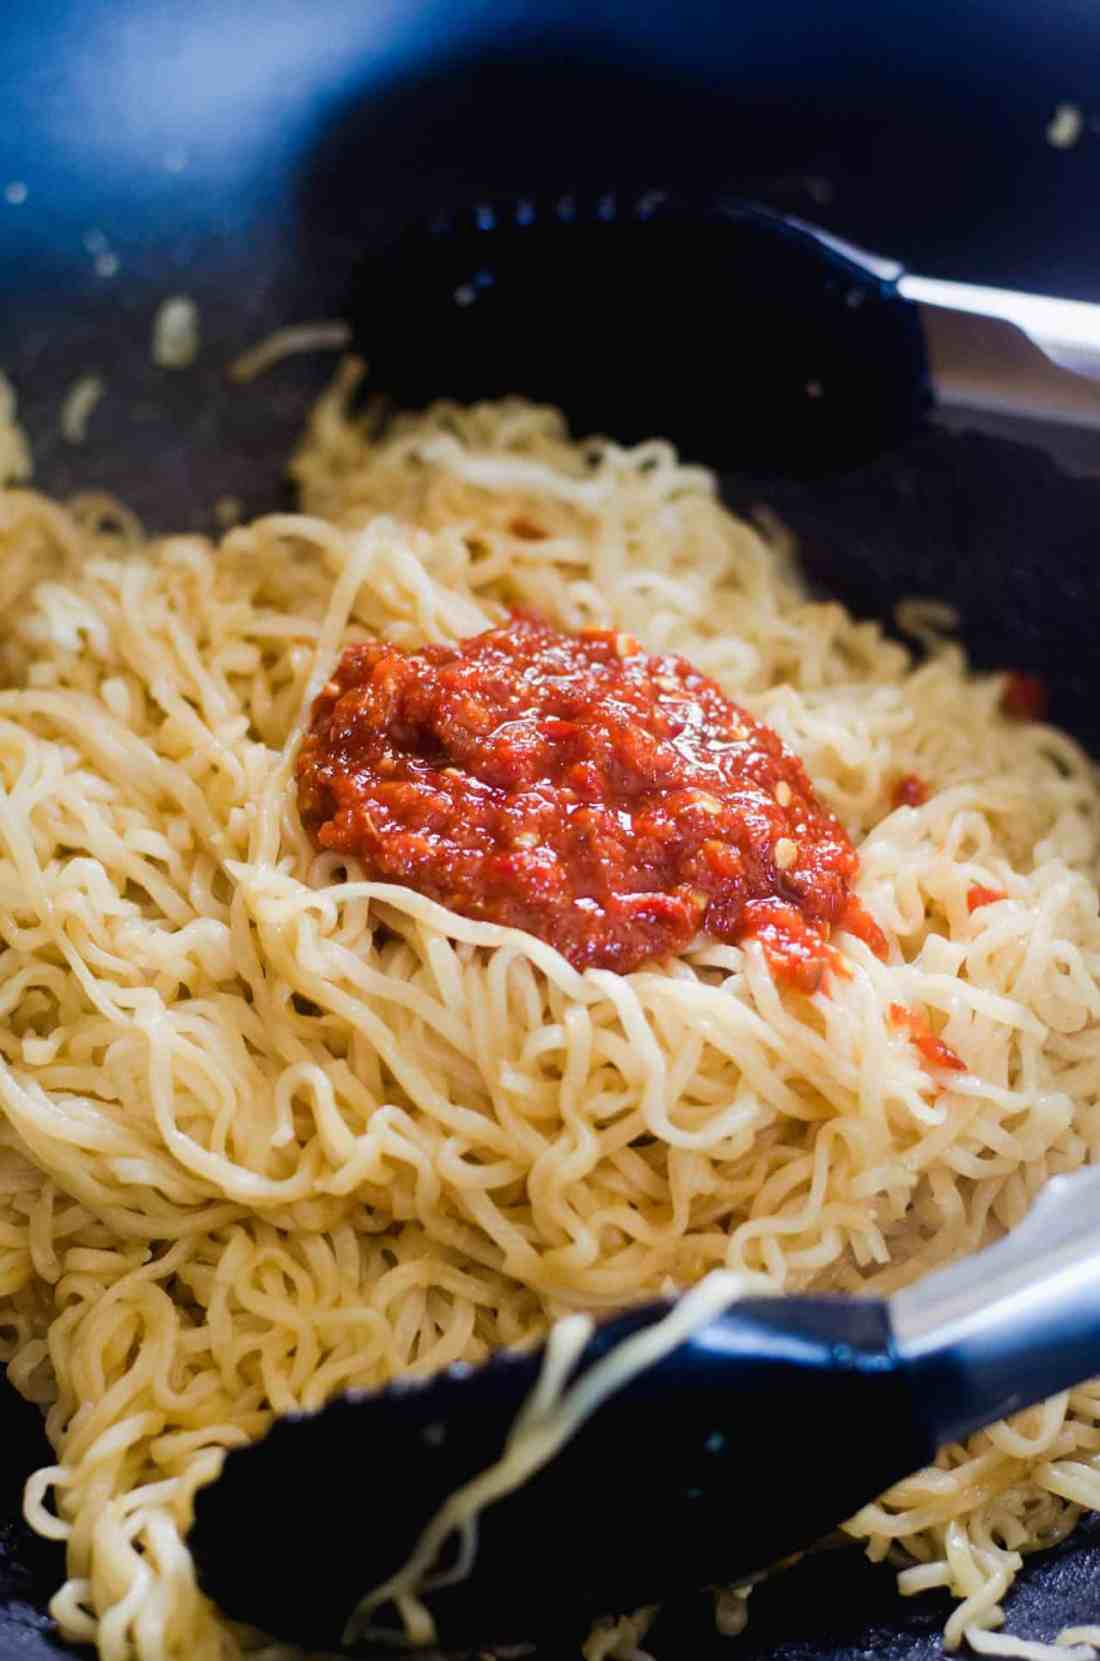 adding chili sauce to Asian noodles in wok